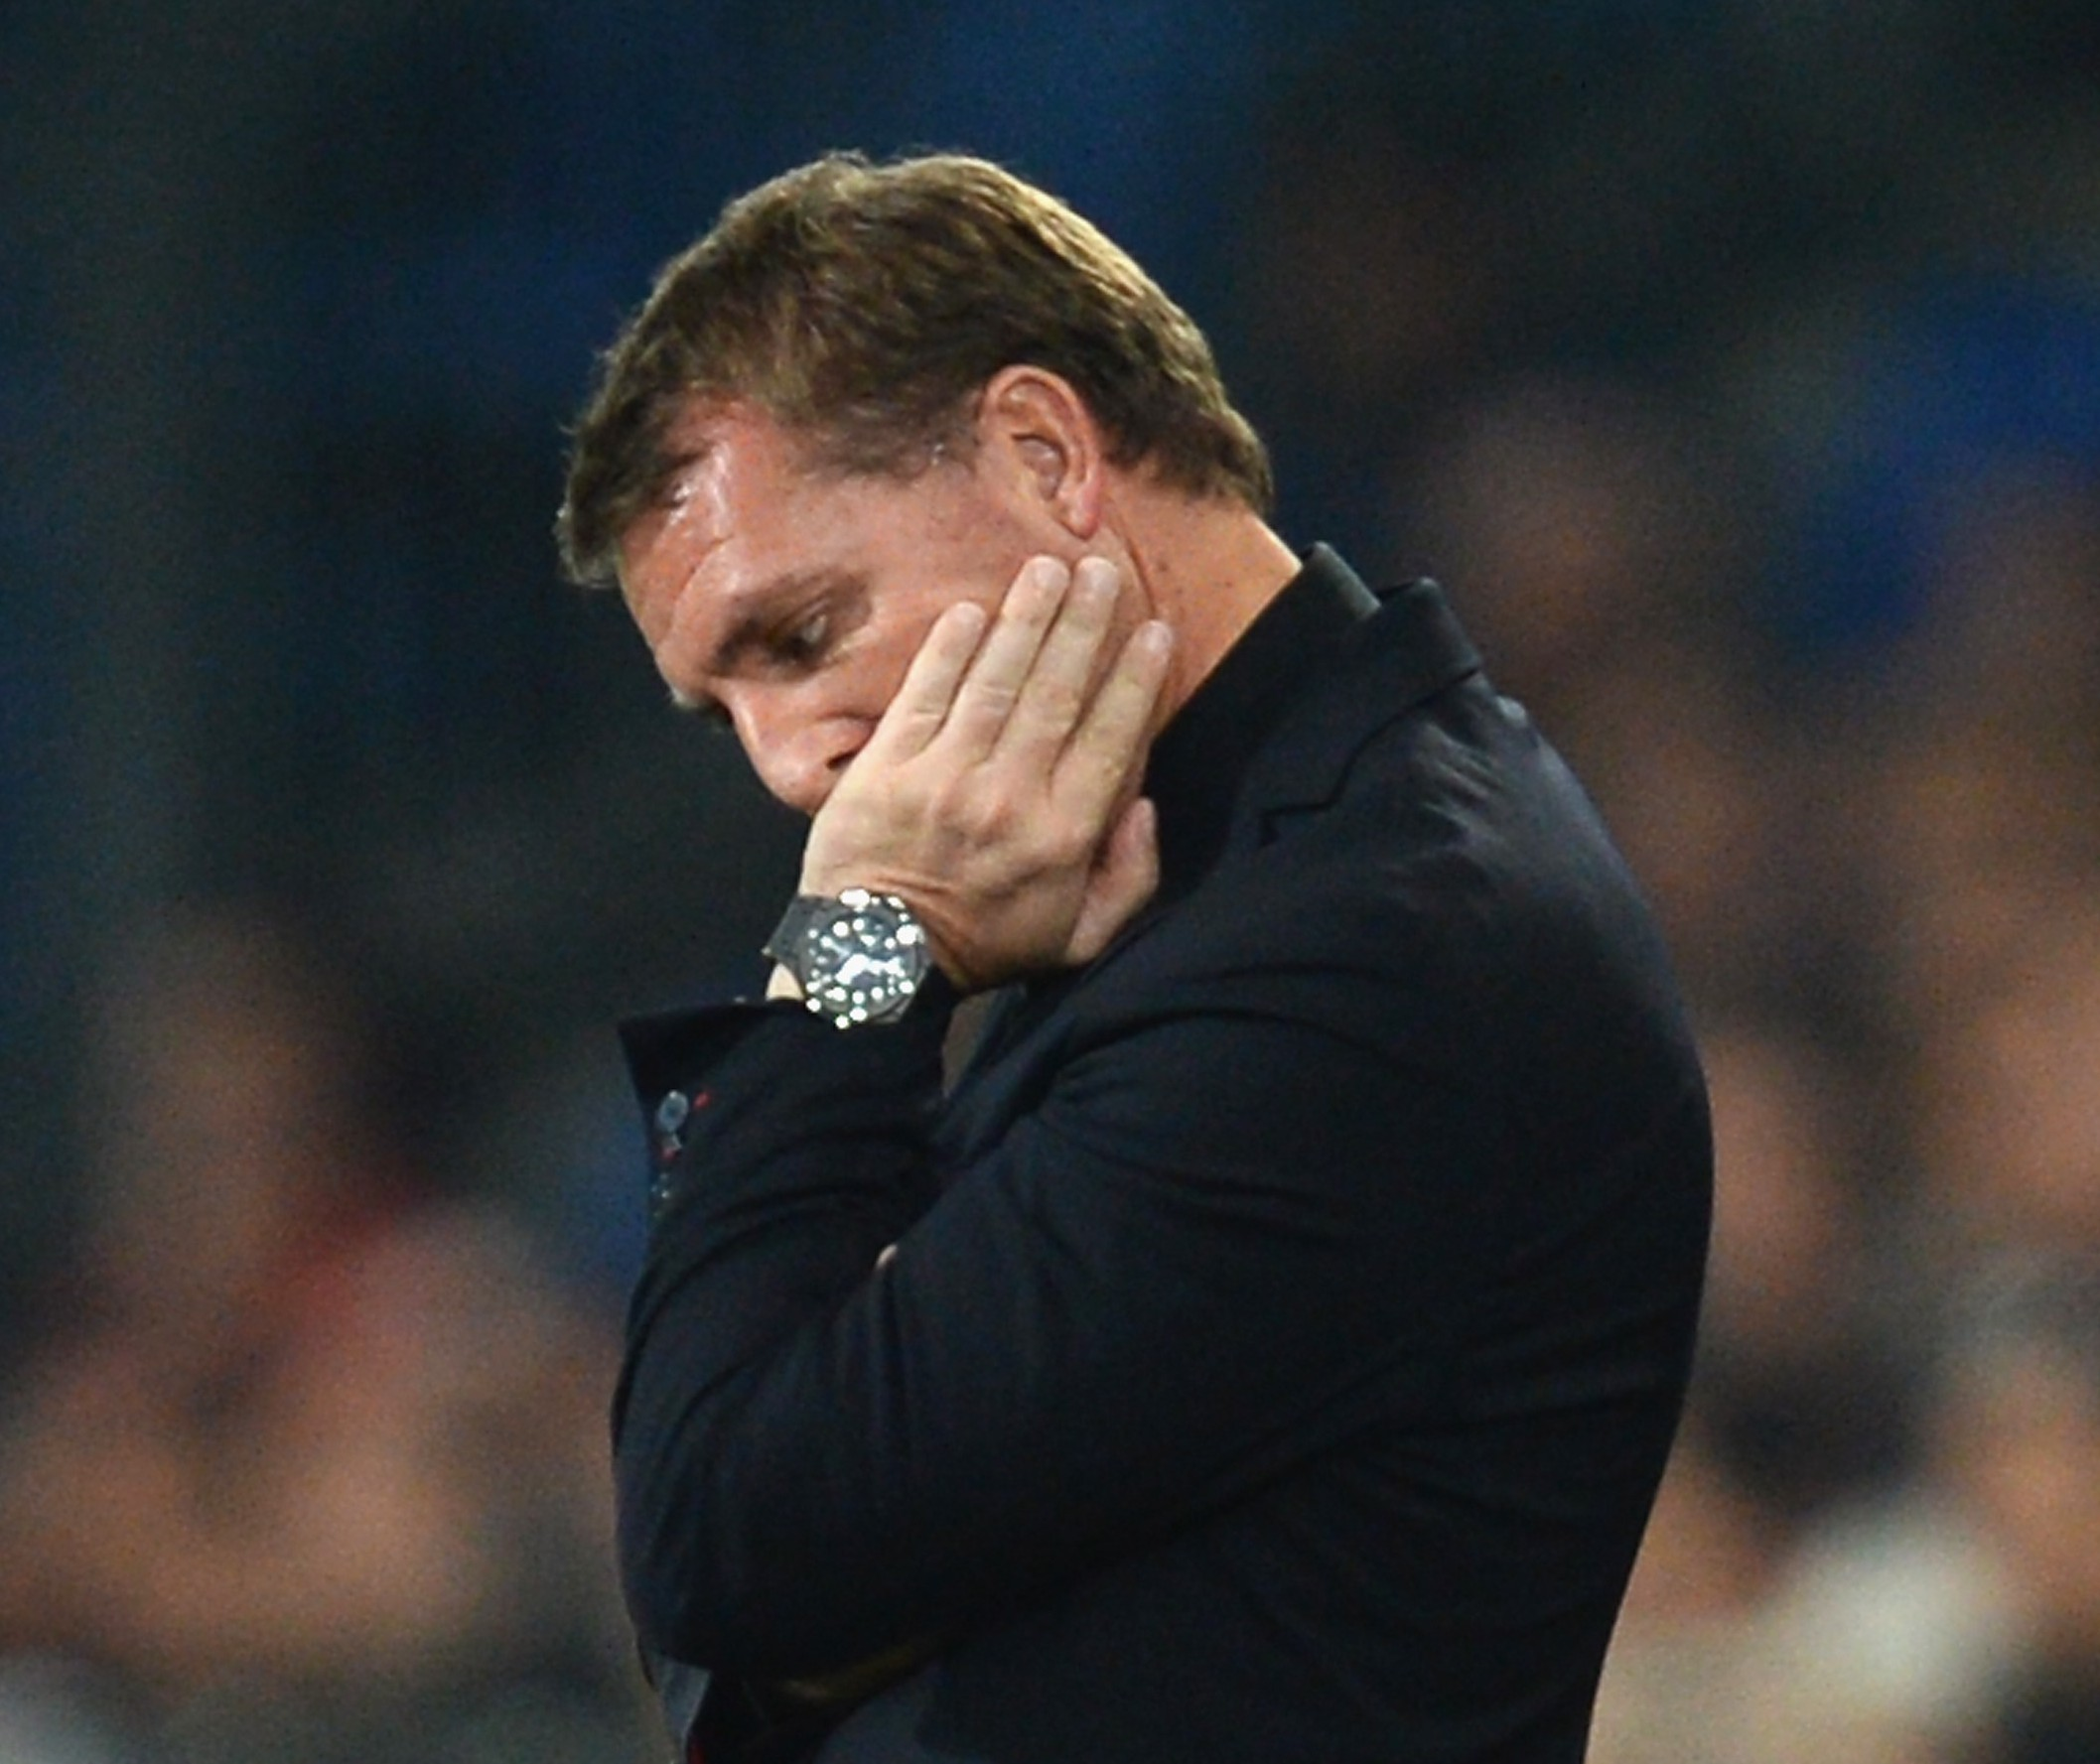 Liverpool manager Brendan Rodgers could be just two games away from the sack